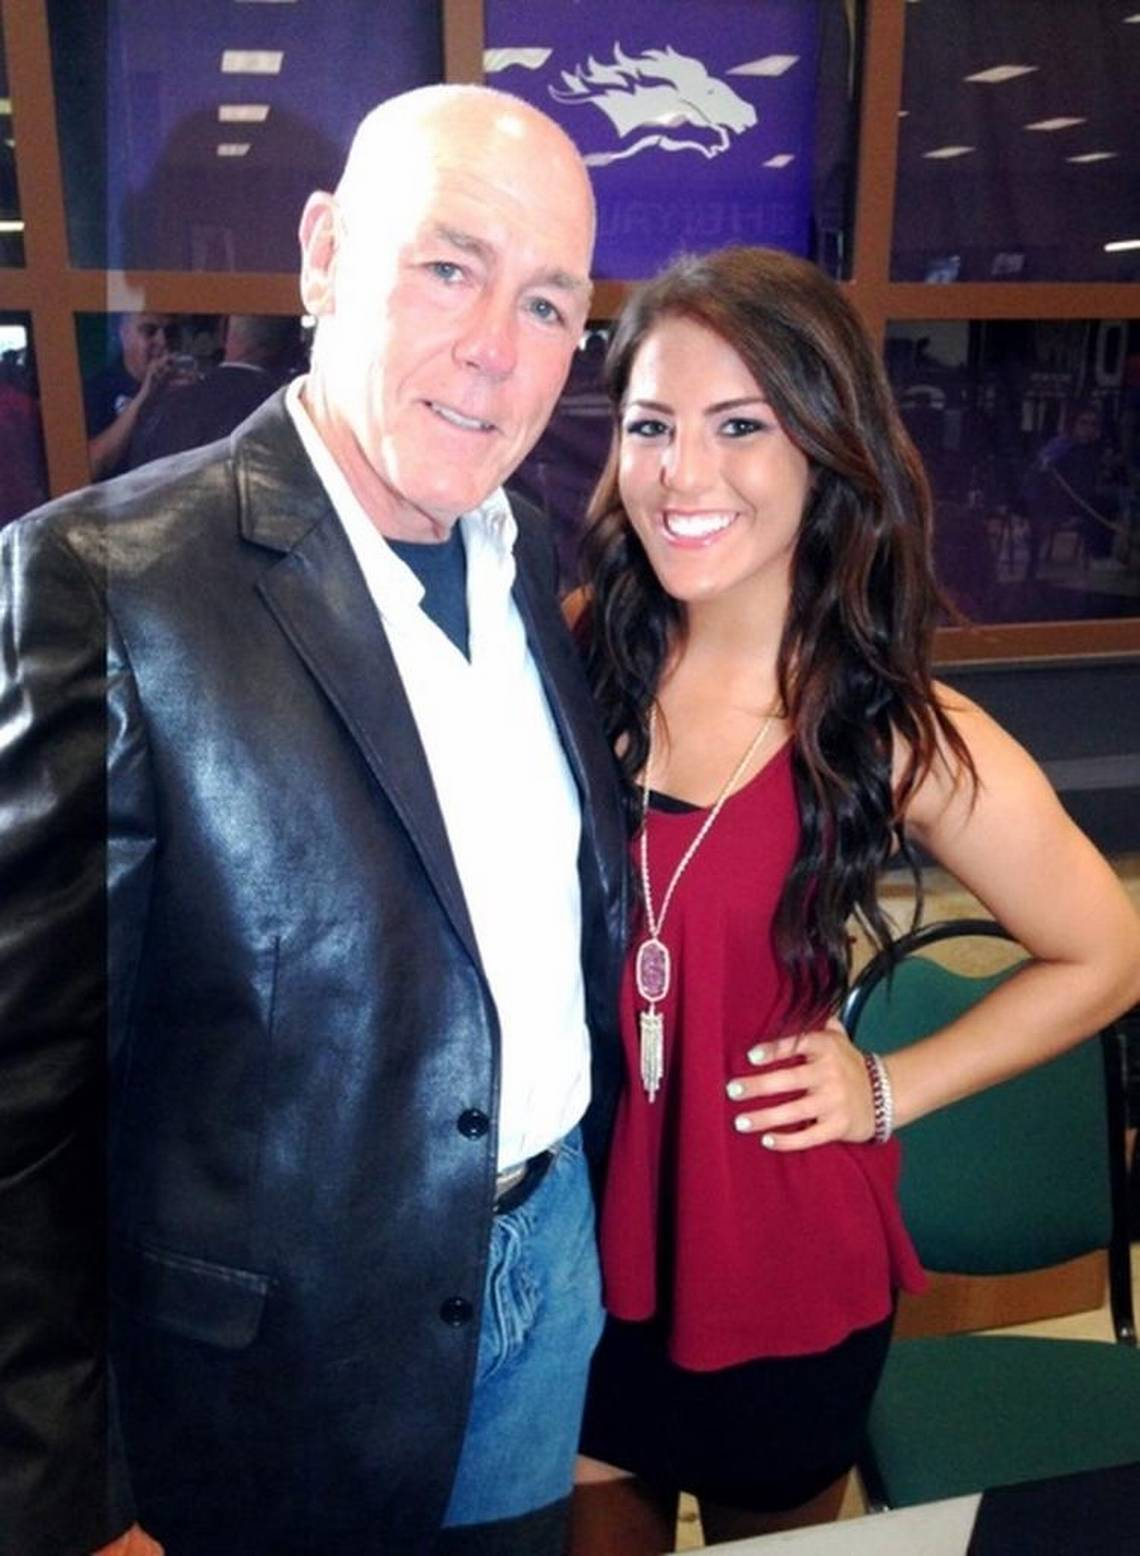 Tully Blanchard with his daughter, Impact Wrestling star Tessa Blanchard